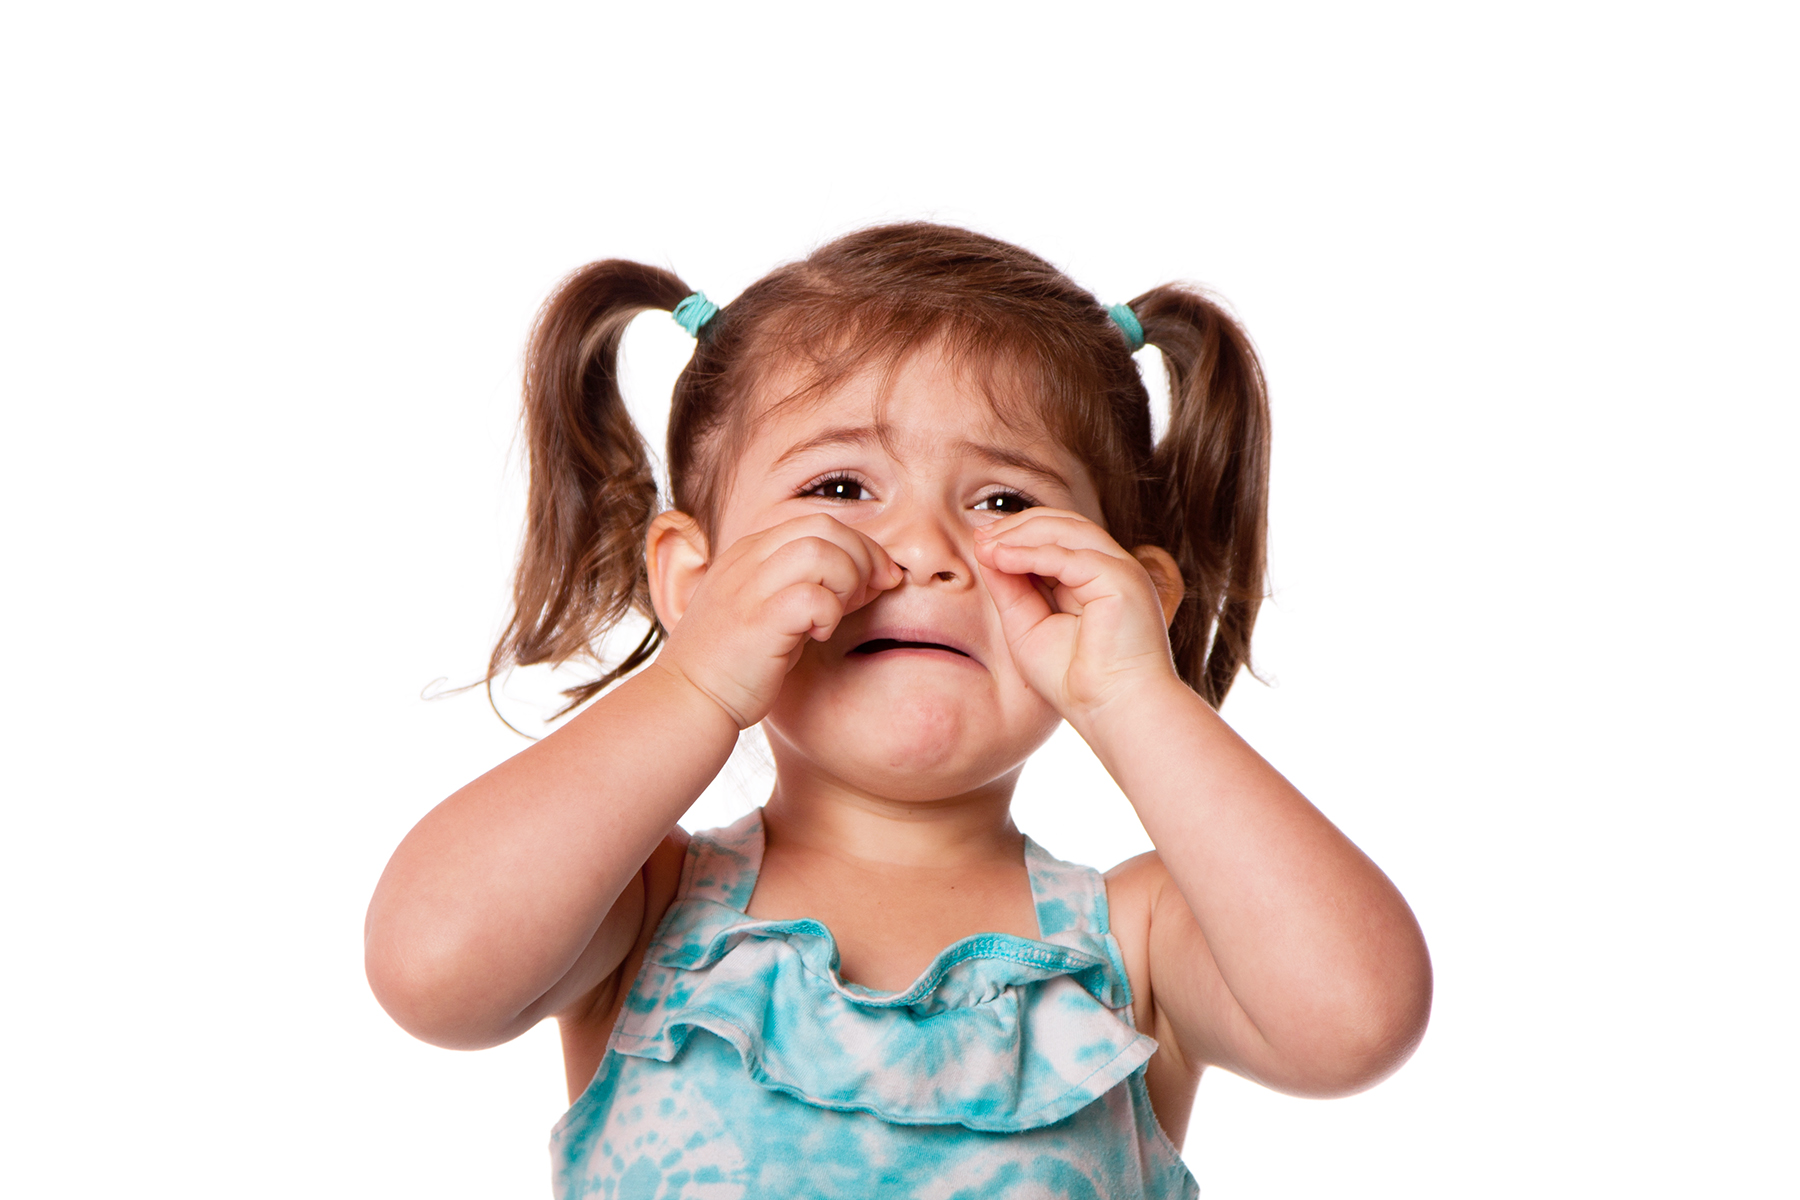 My Toddler Hits - What Do I Do?